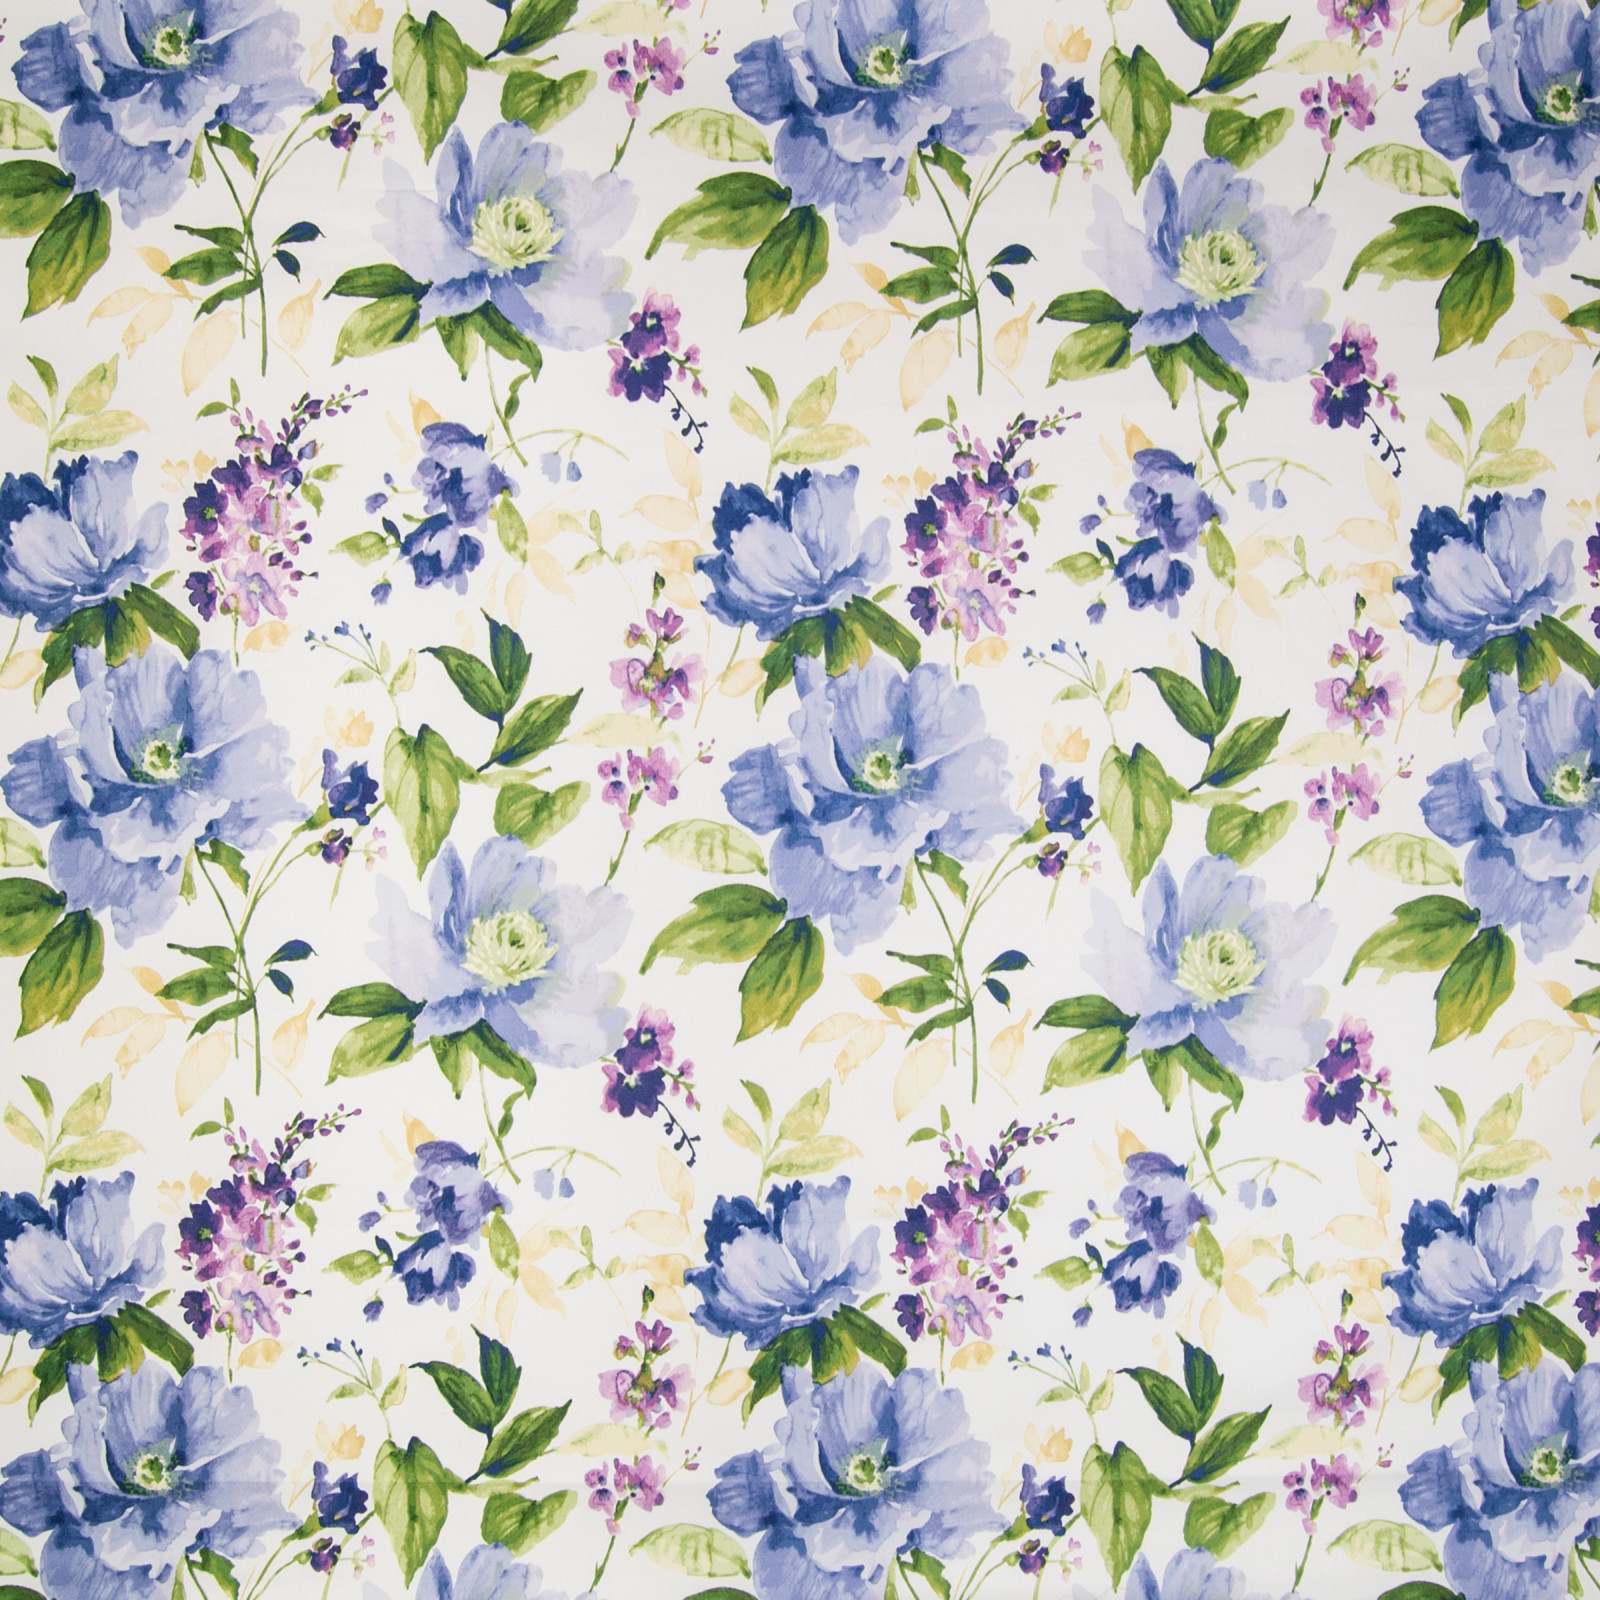 Periwinkle Blue And Purple Floral Cotton Upholstery Fabric